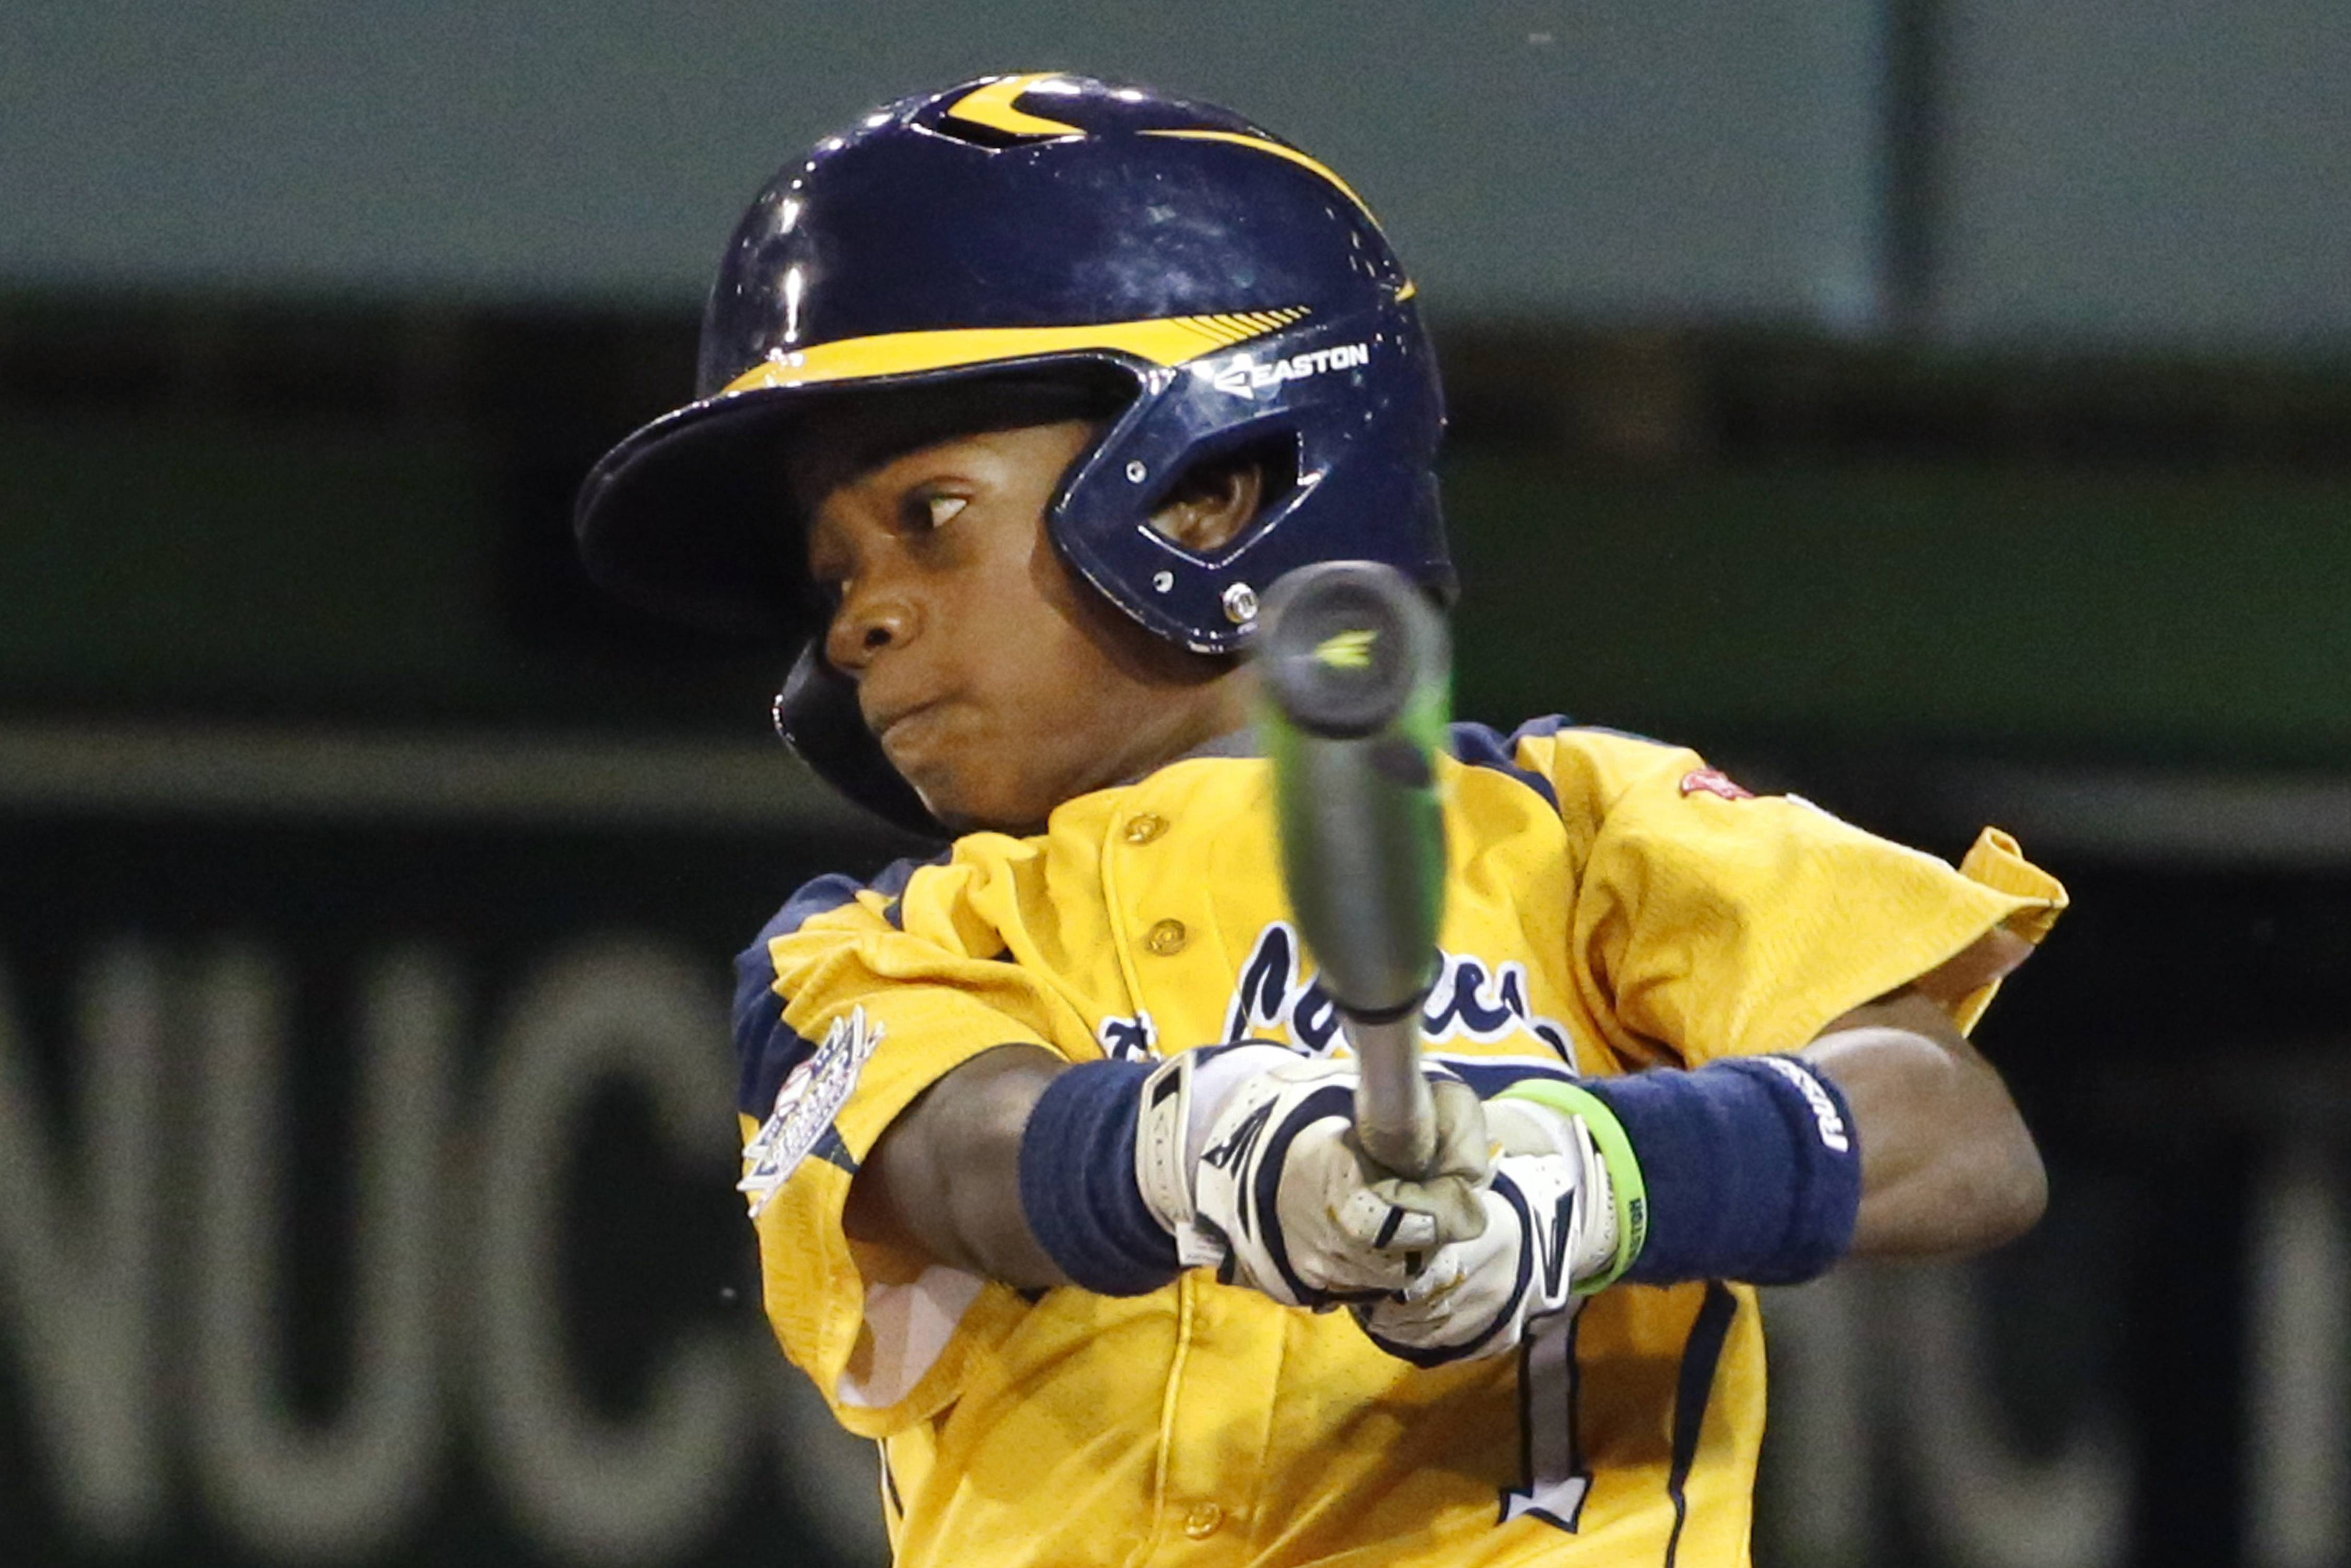 Chicago's DJ Butler drives in 2 runs with a single in the first inning of his team's victory over Philadelphia on Thursday. The Jackie Robinson West team has a rematch against Nevada today in the U.S. final.